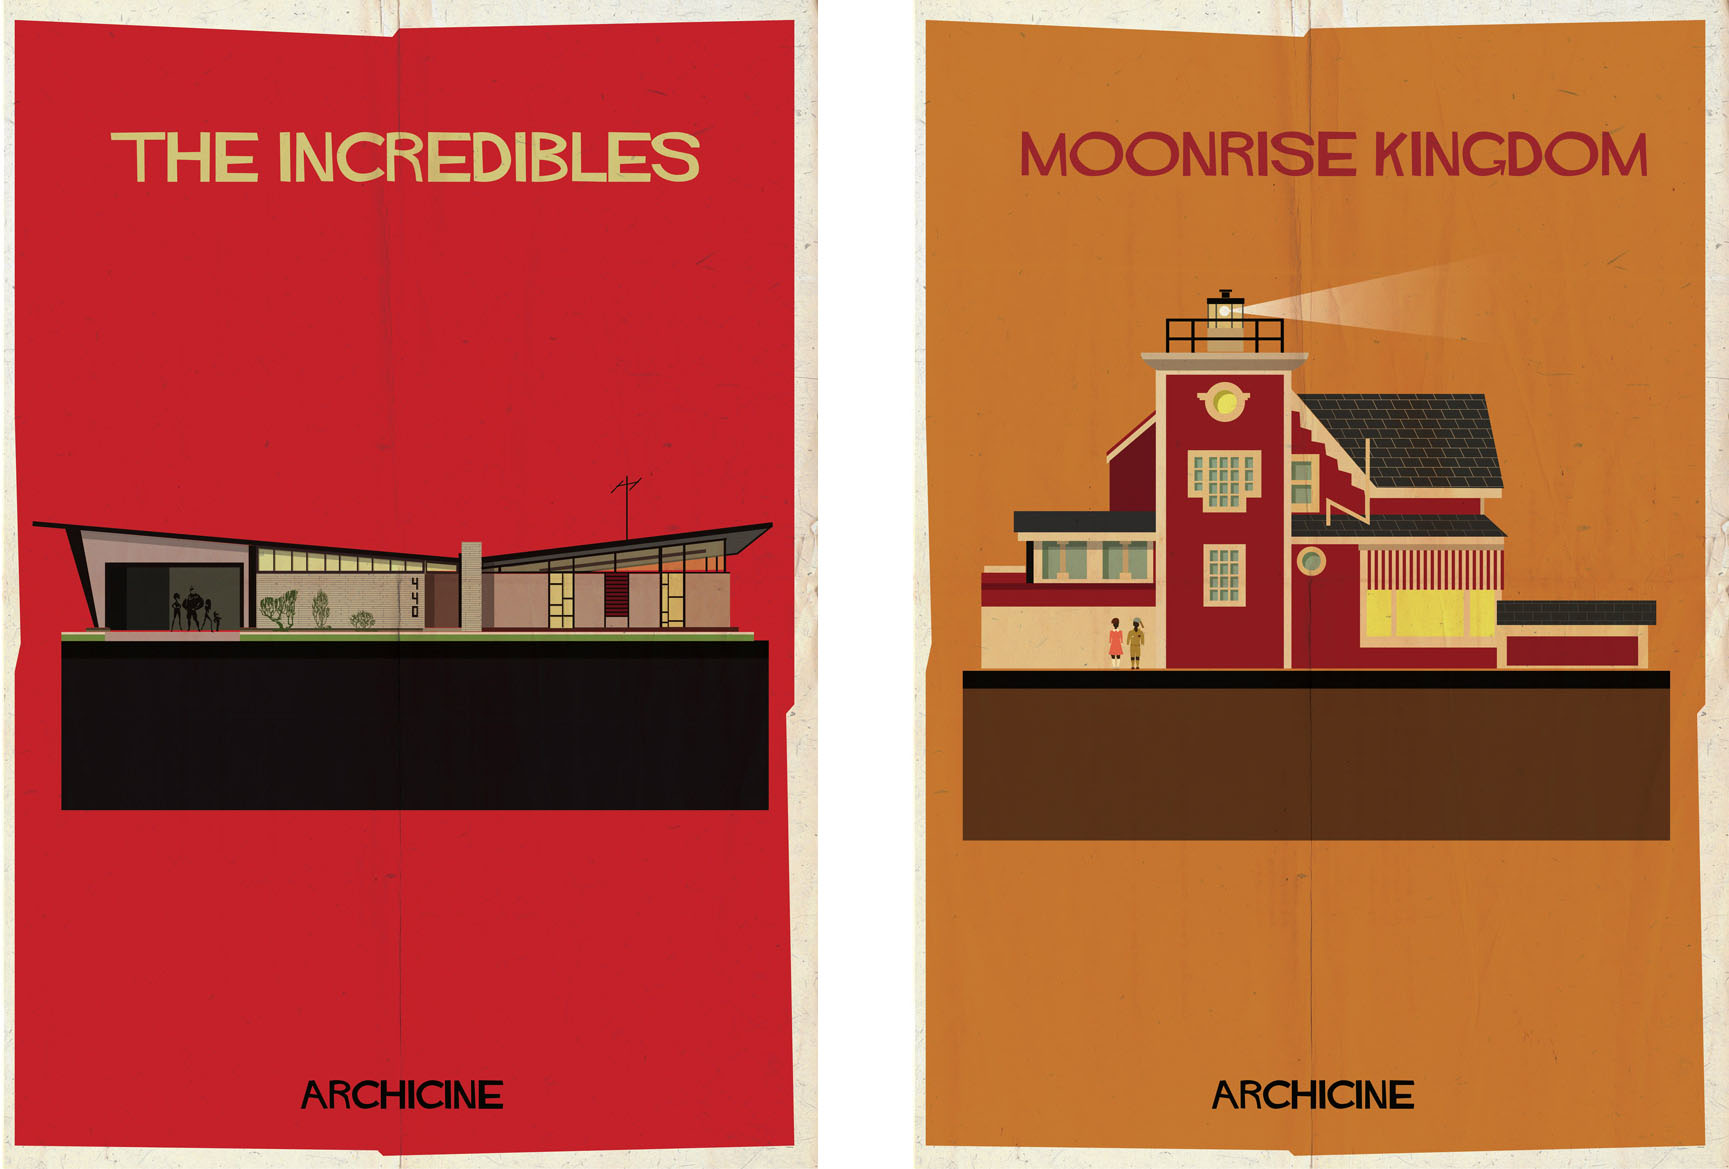 The incredibles & Moonrise kingdom: Archiciné by Federico Babina